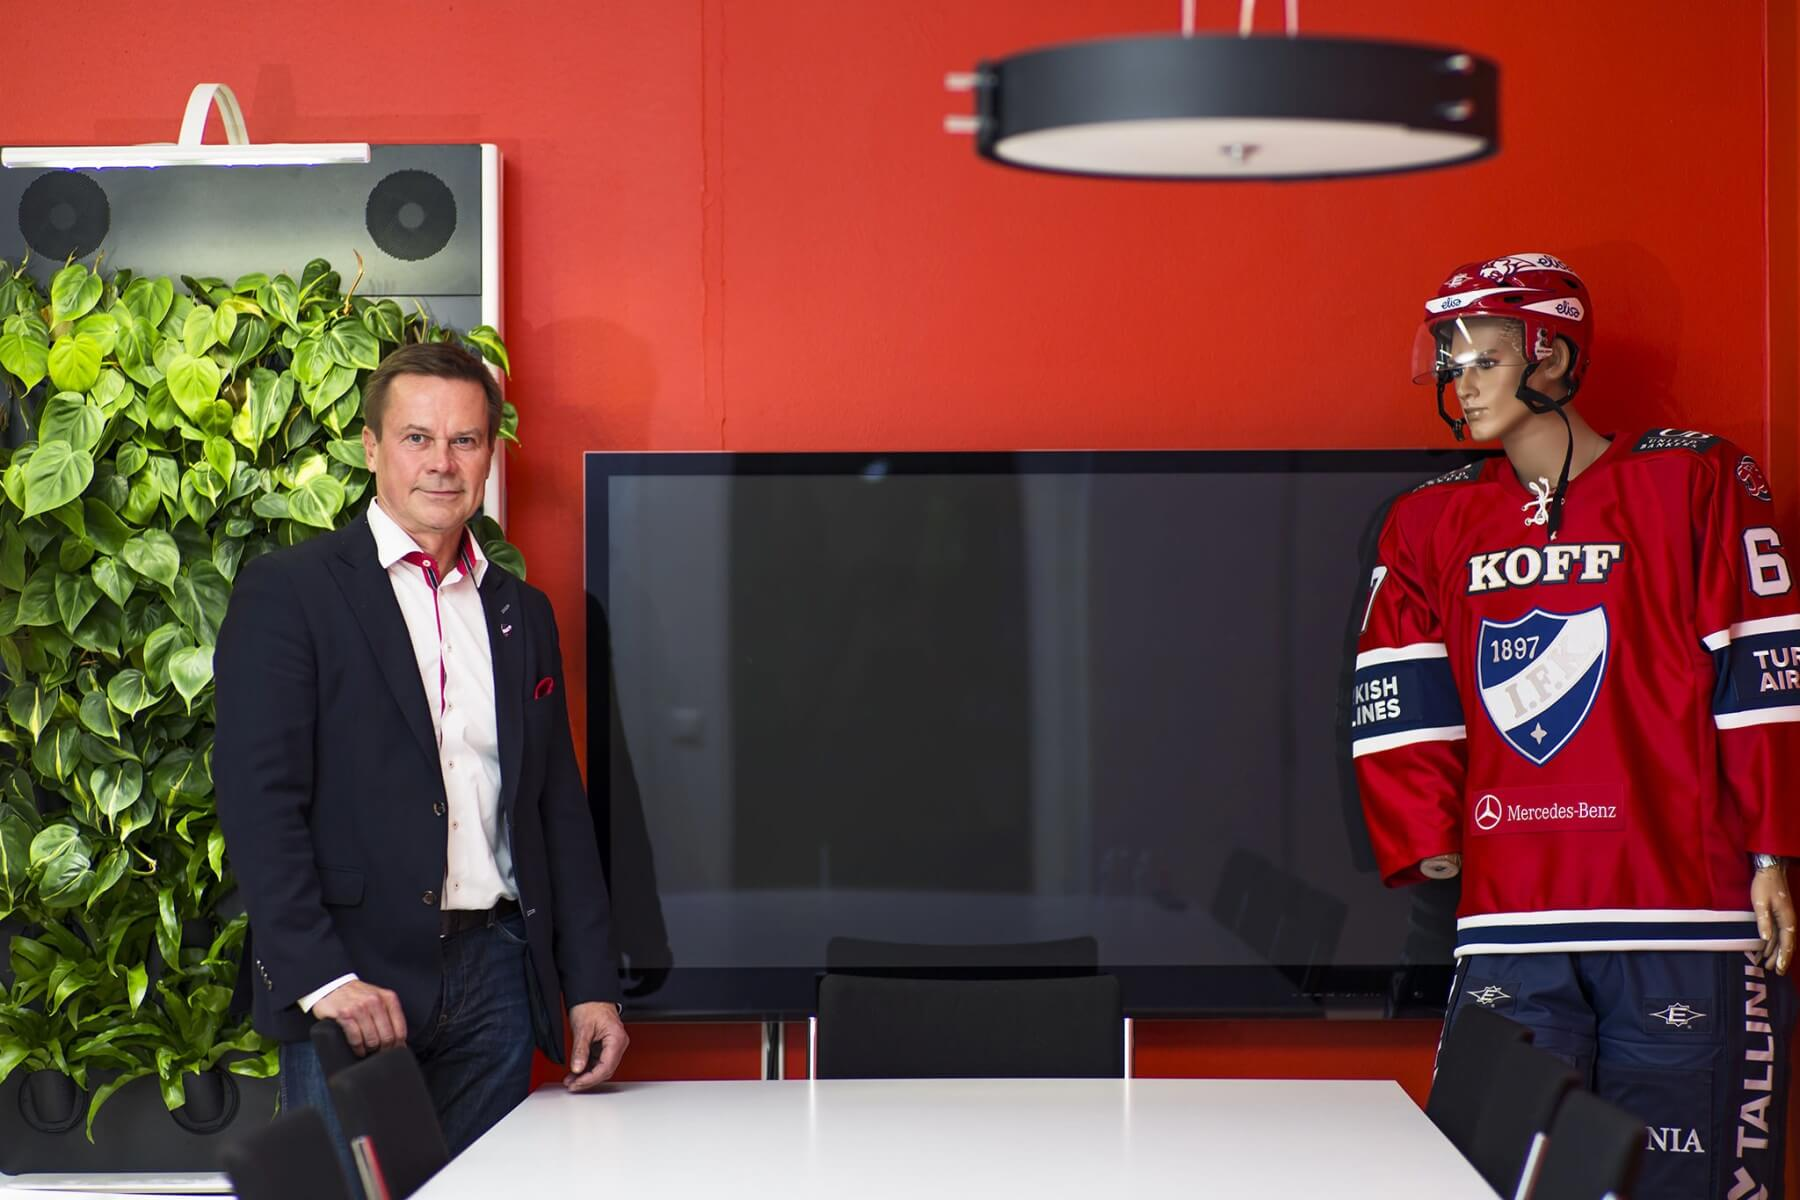 hifk-office-hero.jpg